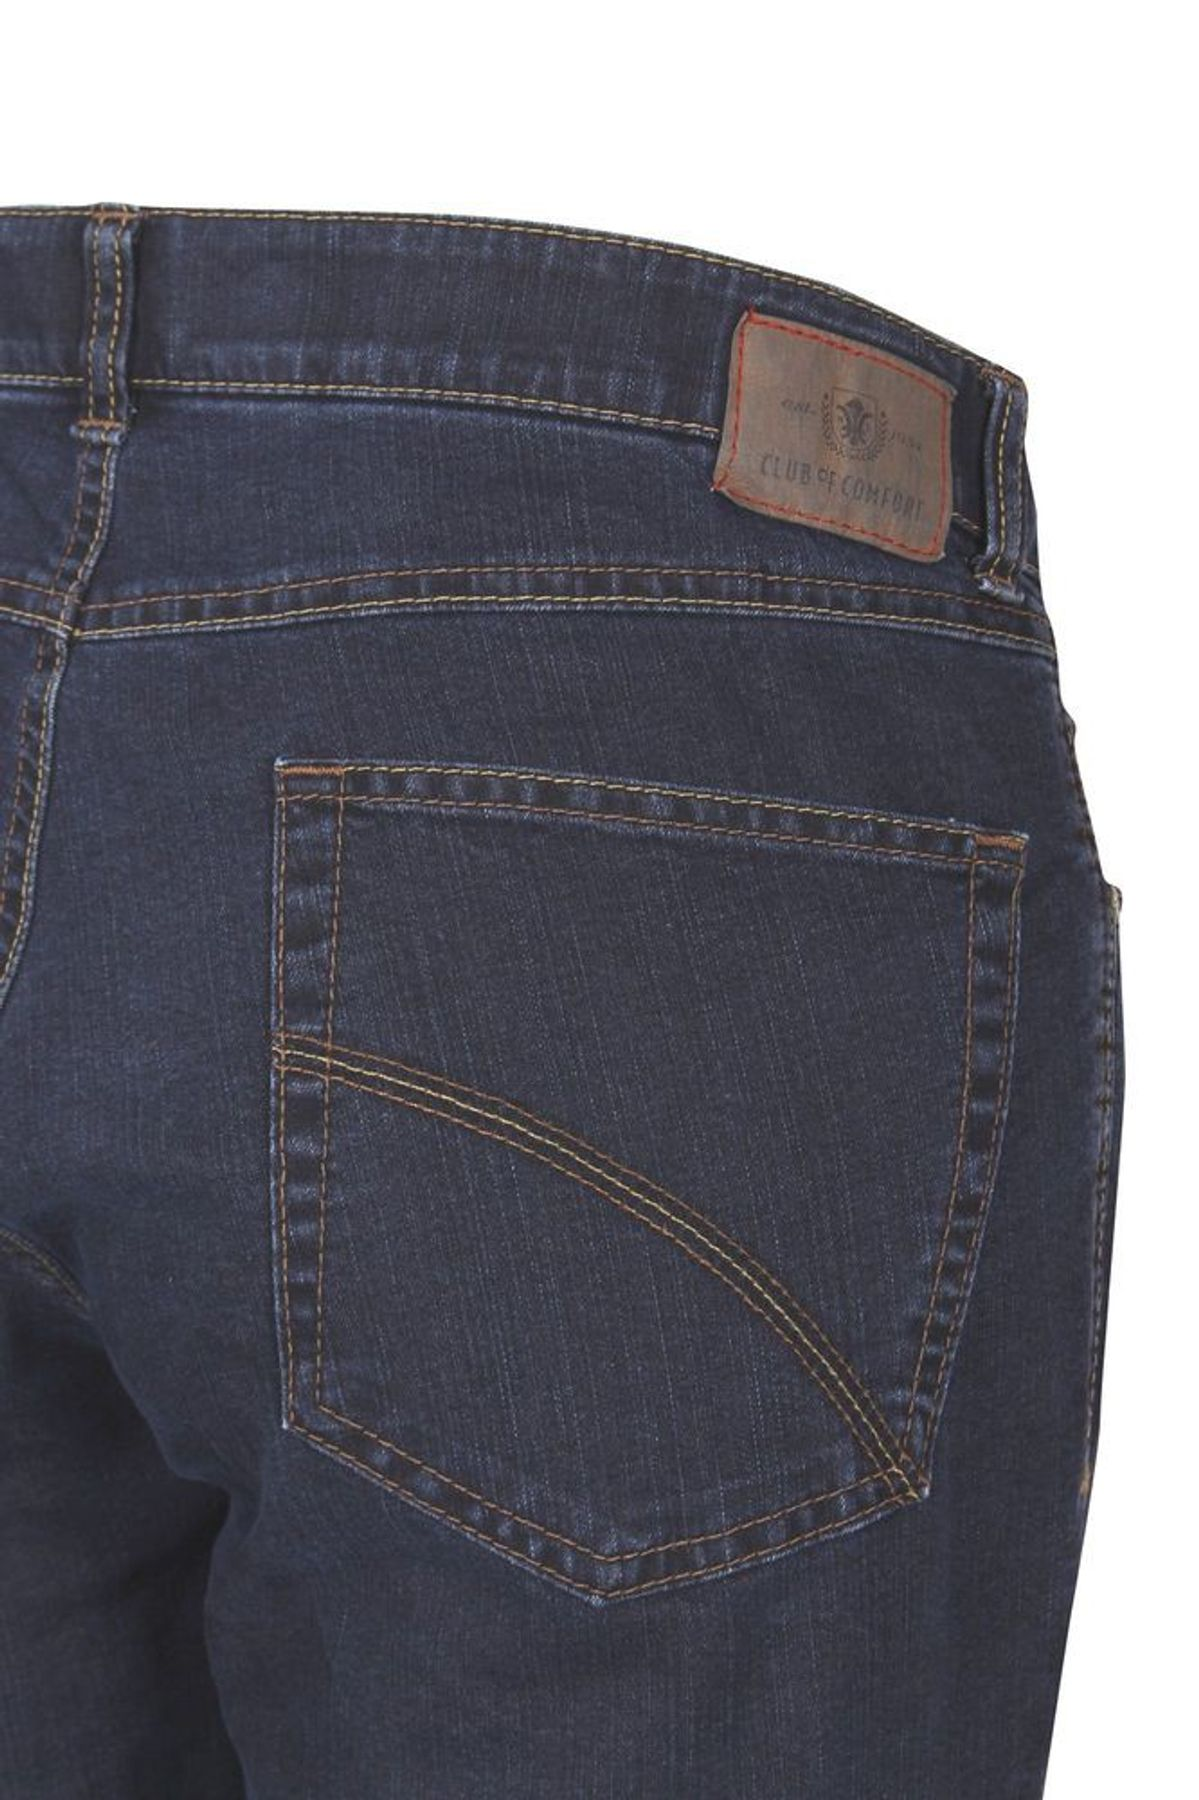 Club of Comfort - Herren Five Pocket Jeans in verschiedenen Farben, James (4631) – Bild 20